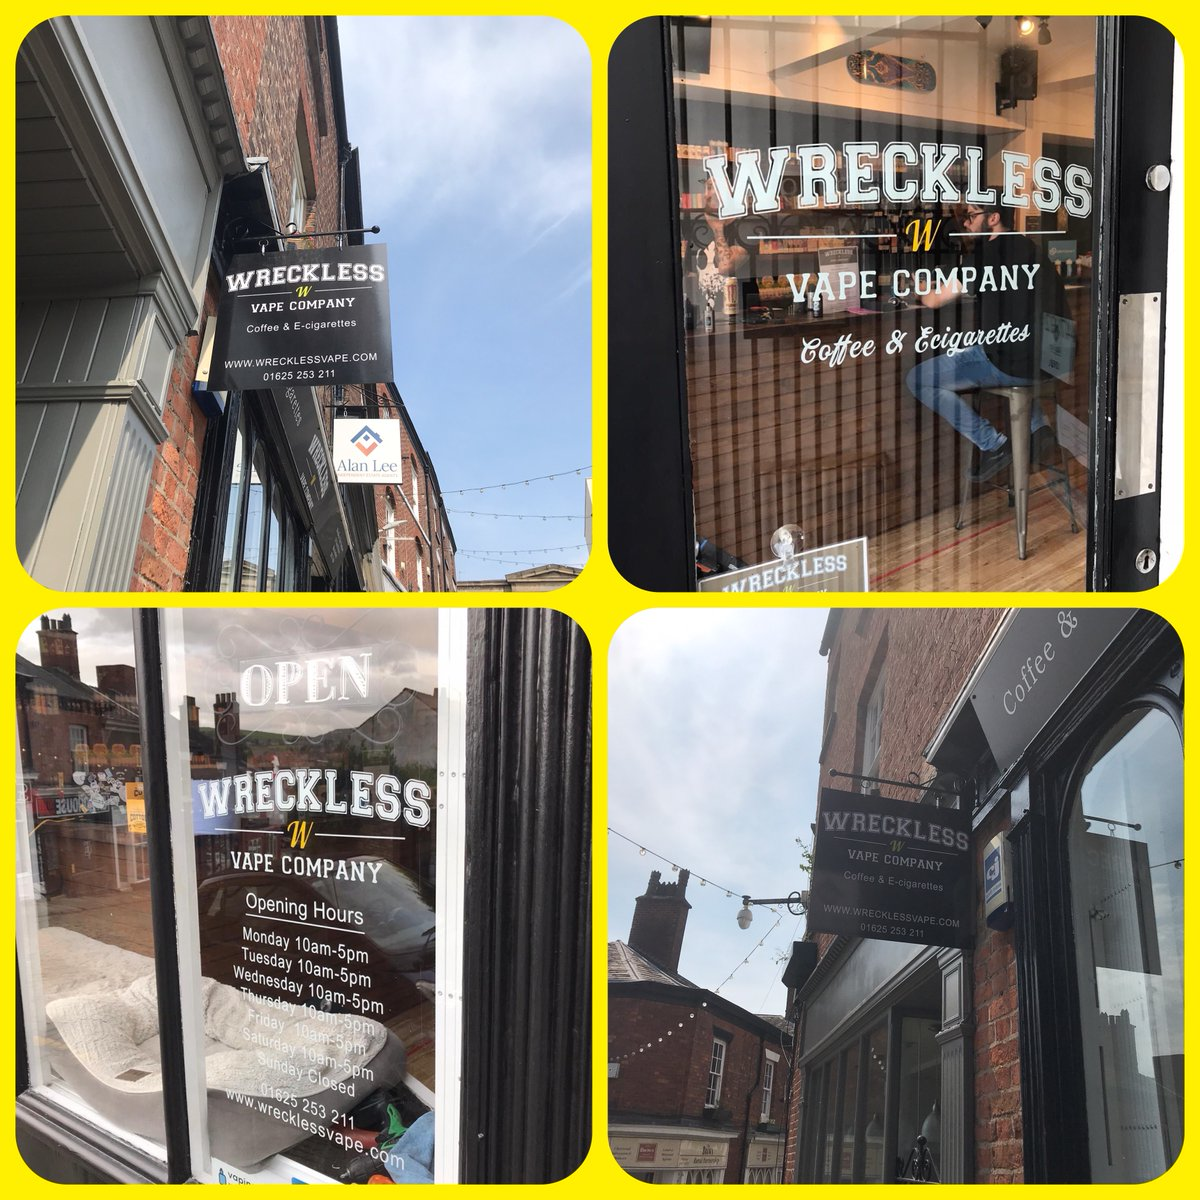 Thank u Wreckless Vape Company  For choosing #signs Express #Macclesfield to supply & fit #swinging #sign on bracket & #windowgraphics ! For all yr #signage needs 📞01625708854 #cheshire #CheshireSet #Wilmslow #Macclesfieldbusiness #Alderley #Altrincham #Congleton #Middlewich https://t.co/qumgYUA1dF